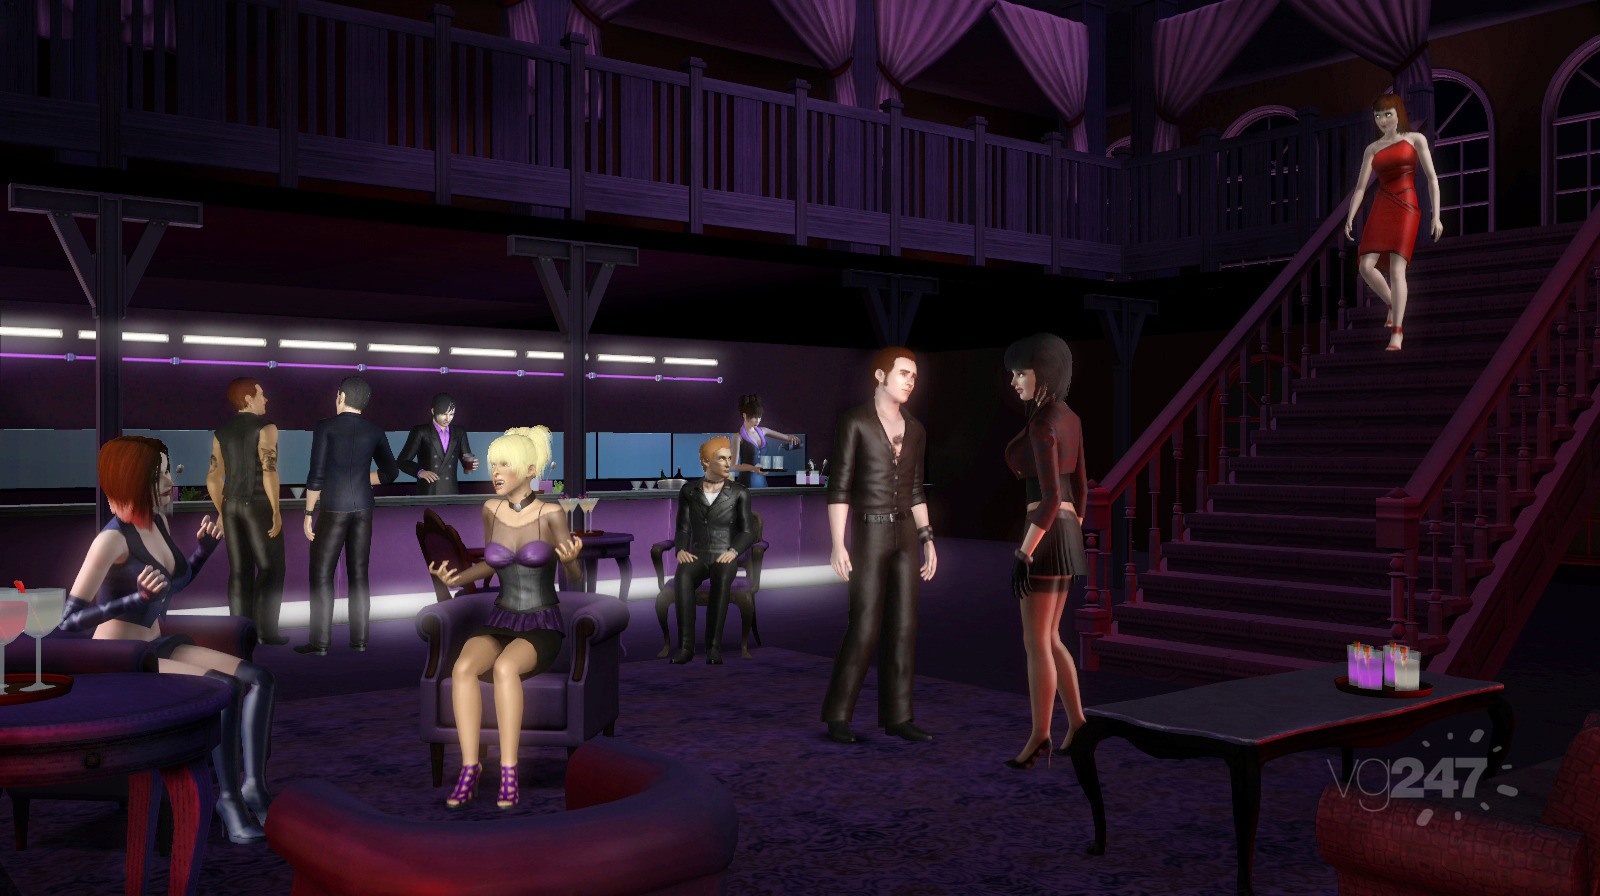 Sims 3 Late Night Expansion Pack ships to stores - VG247